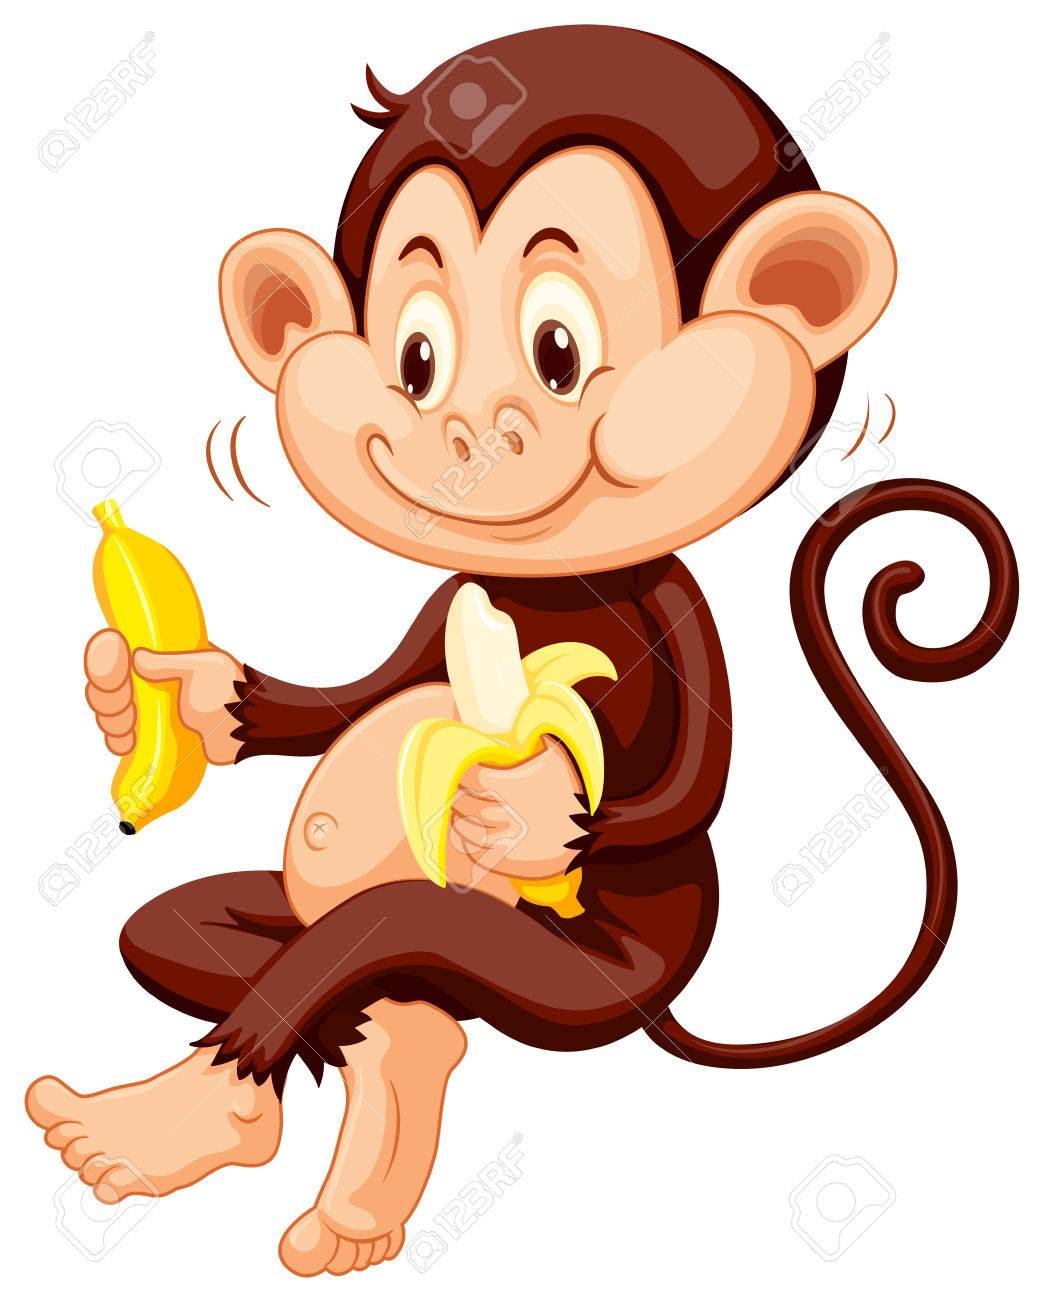 Little monkey eating bananas illustration.